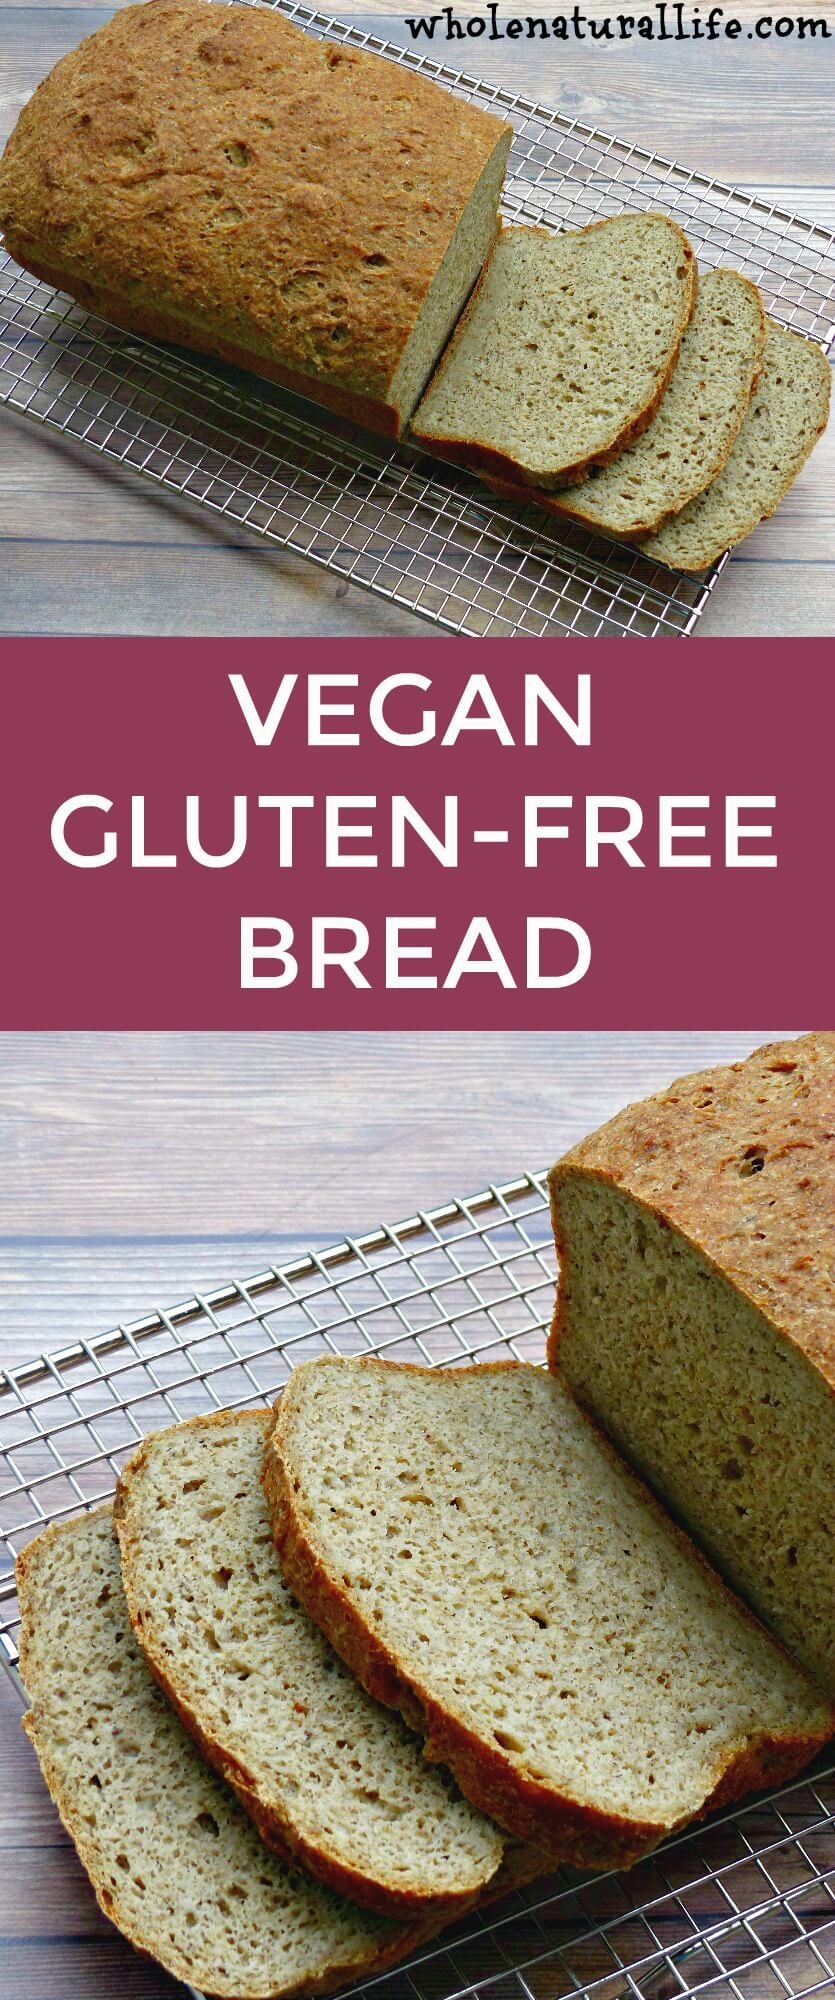 How To Change Oil >> Vegan Gluten-free Bread - Whole Natural Life